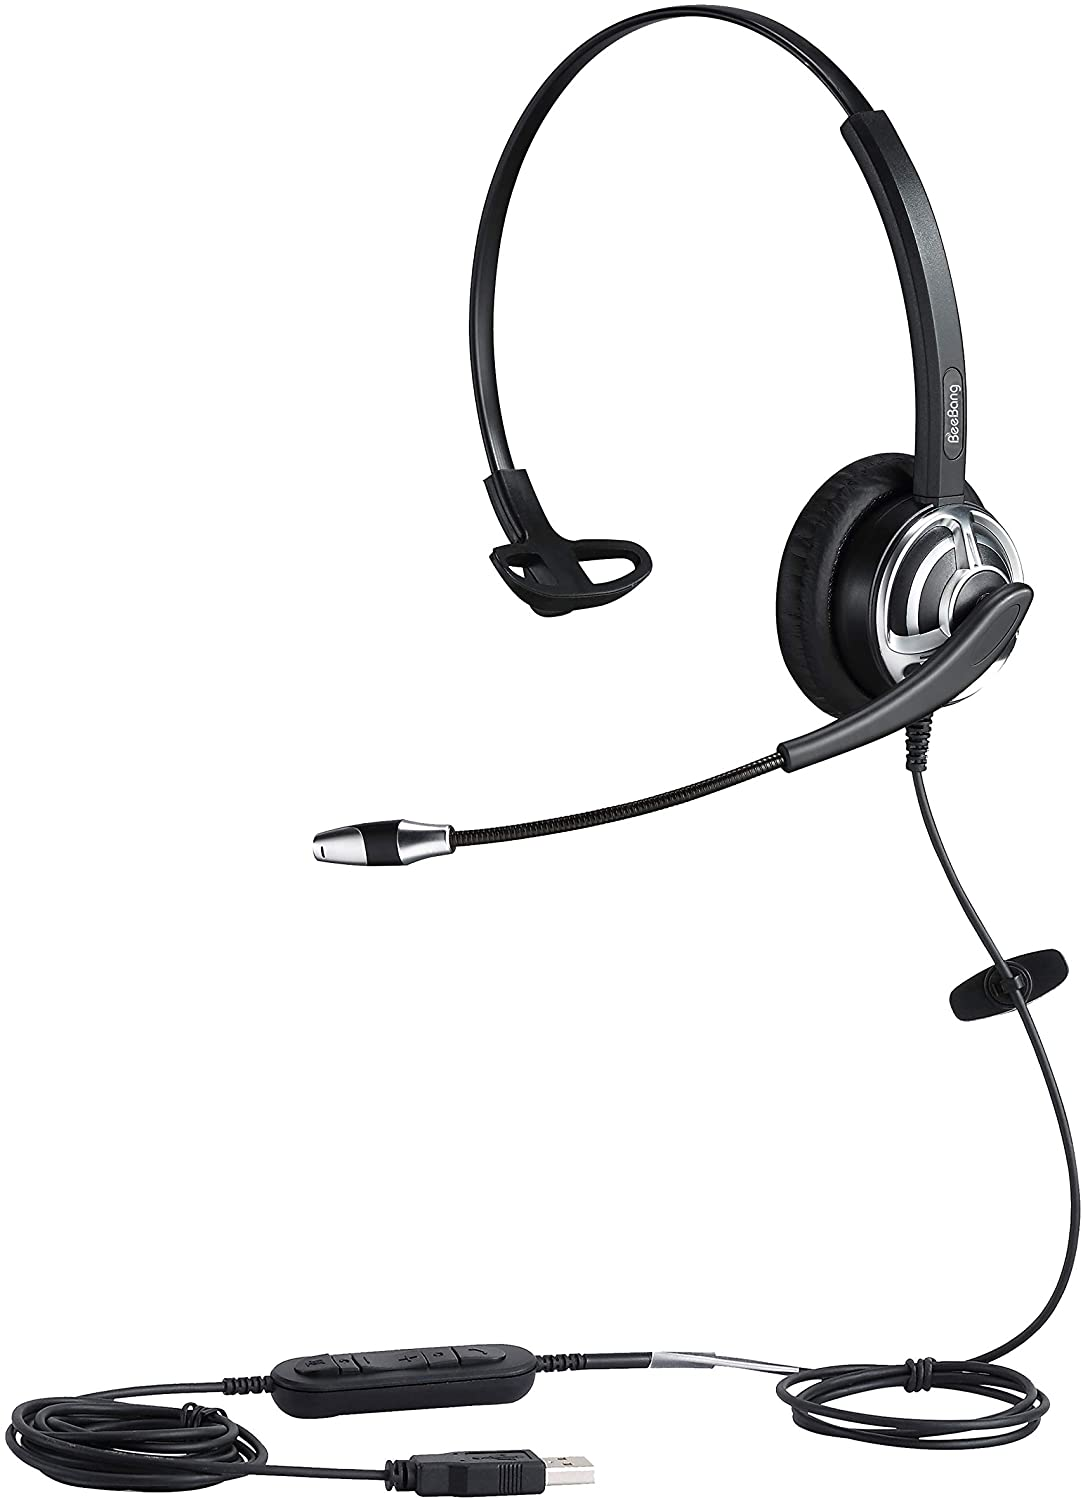 USB Headset with Noise Cancelling Microphone PC Headphone with Mic Mute Volume Control Call Button for Call Center Skype Chat Drangon Voice Recognition Speech Dictation